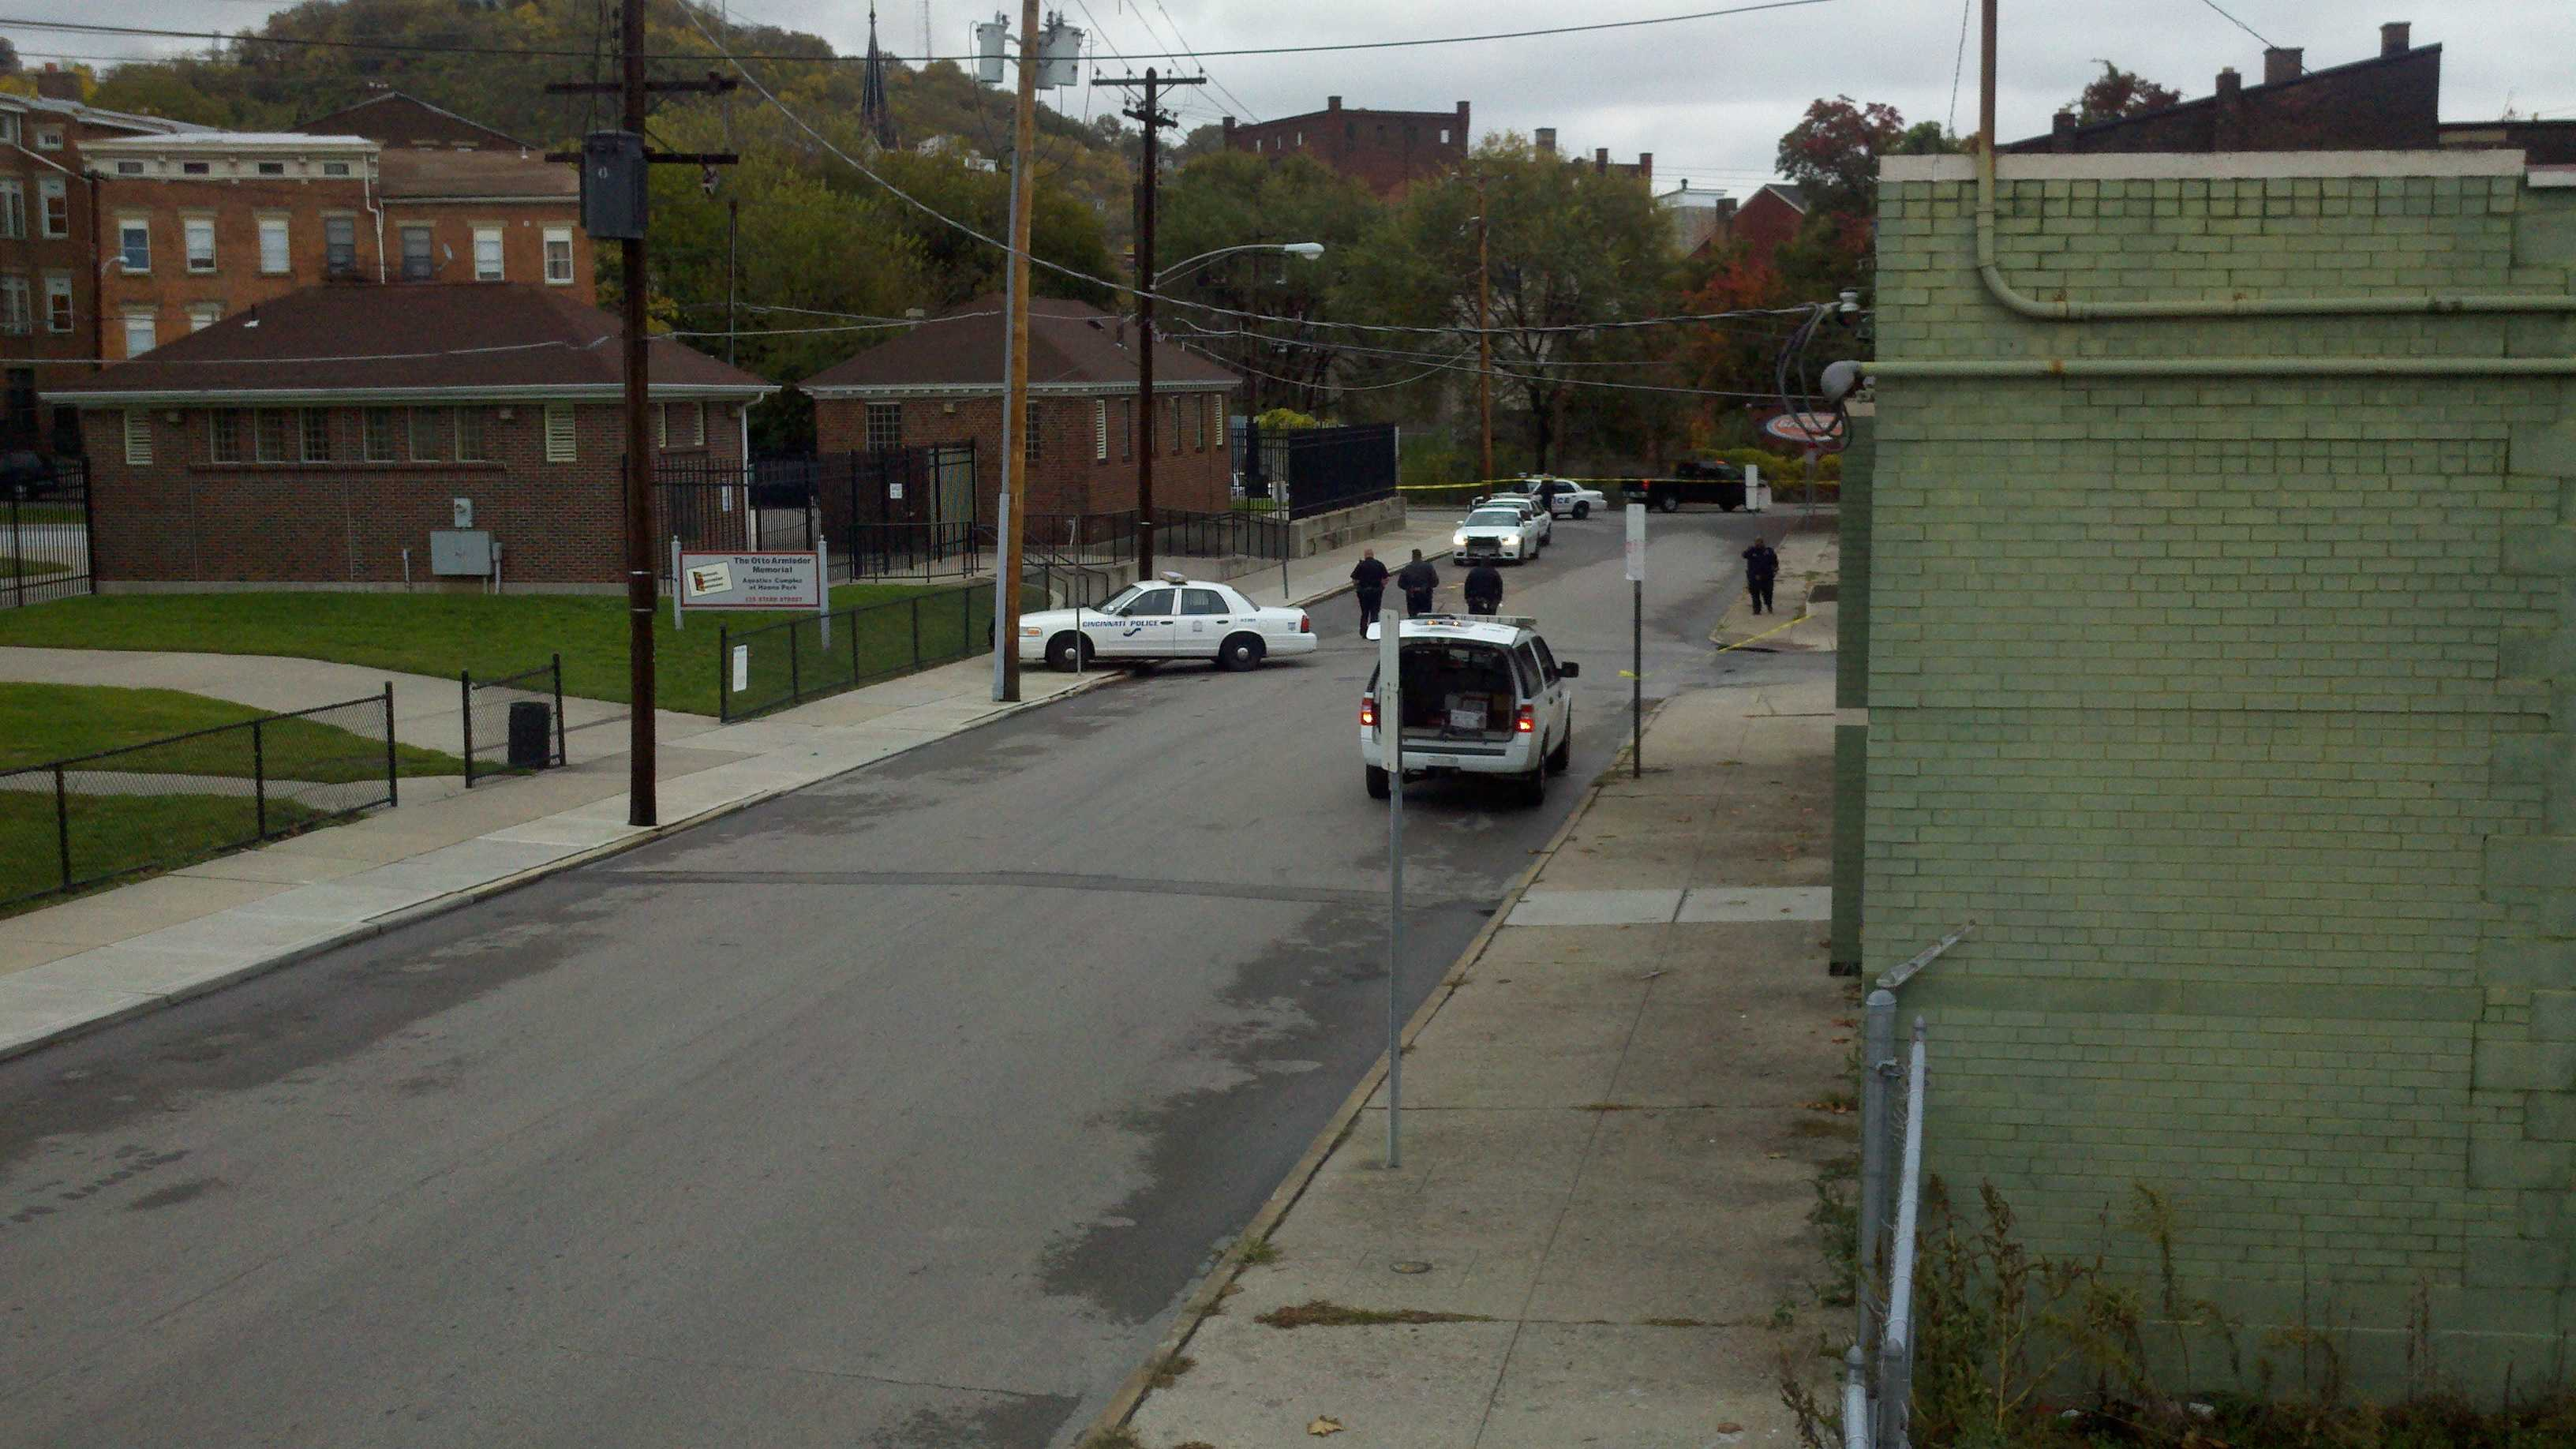 Police are investigating a homicide near Hanna Playground in Over-the-Rhine.